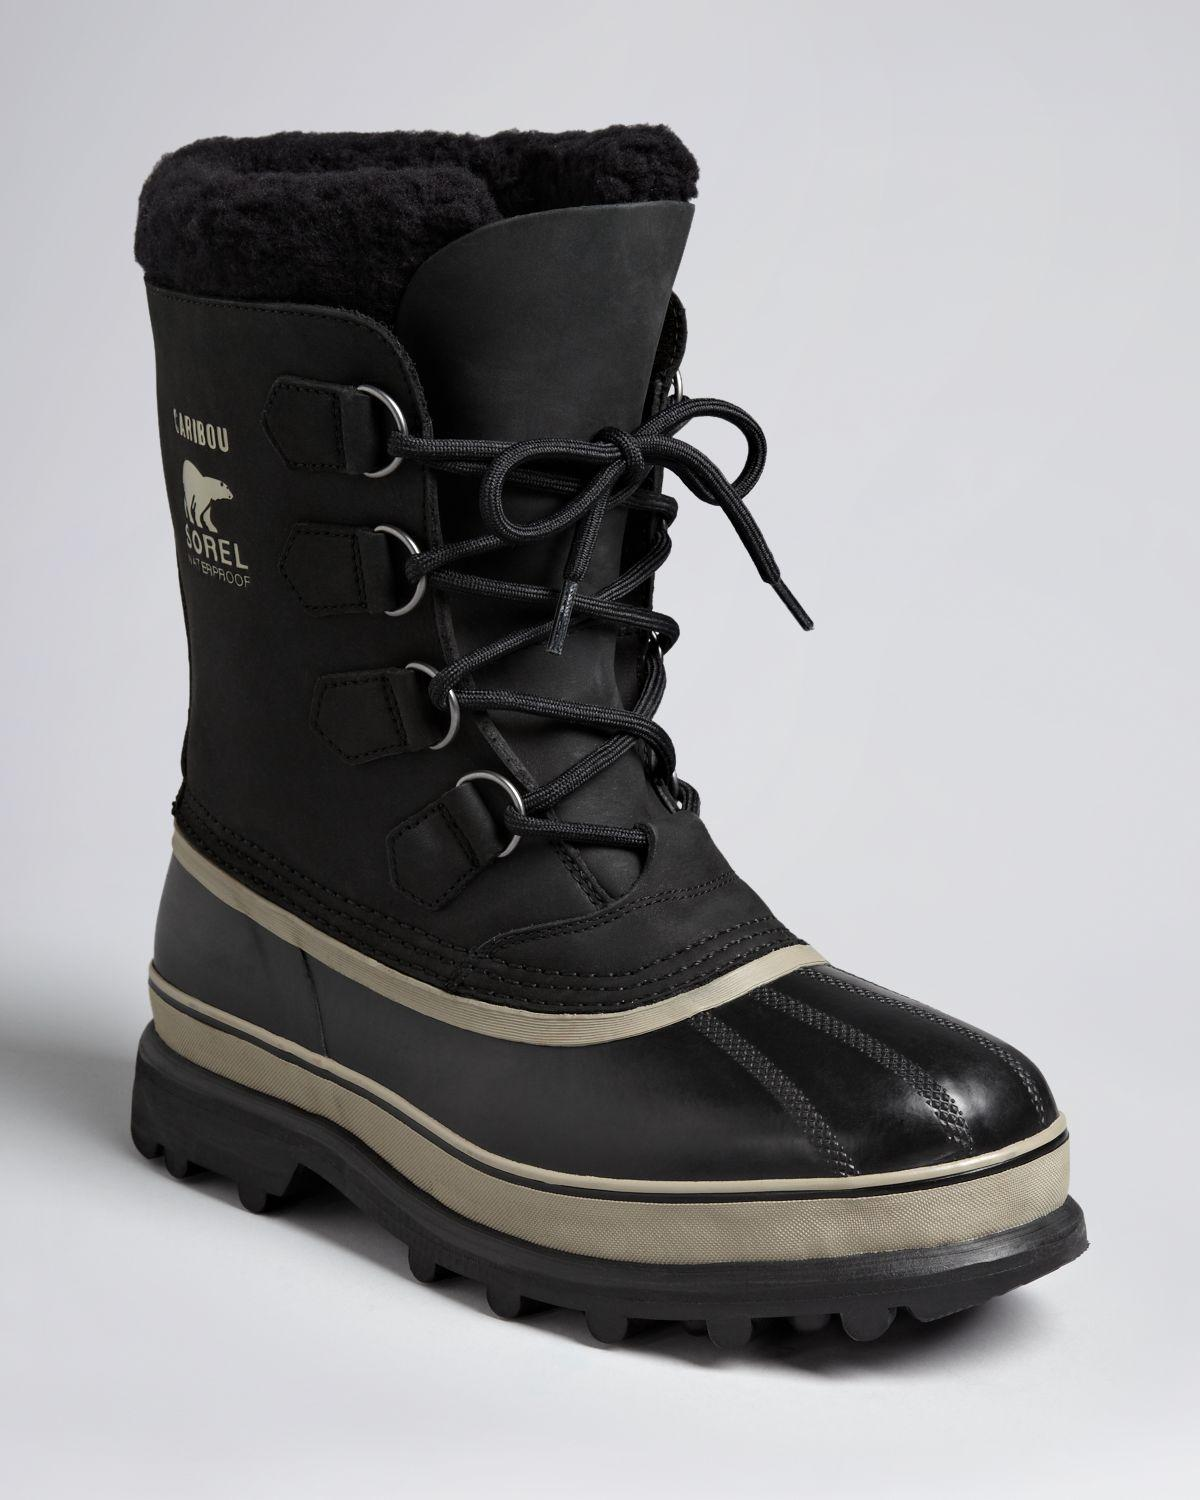 Crafted of black waterproof nubuck and vulcanized rubber, Sorel's Caribou™ snow boots are styled with removable ThermoPlus™ felt liner and Sherpa Pile™ cuff.